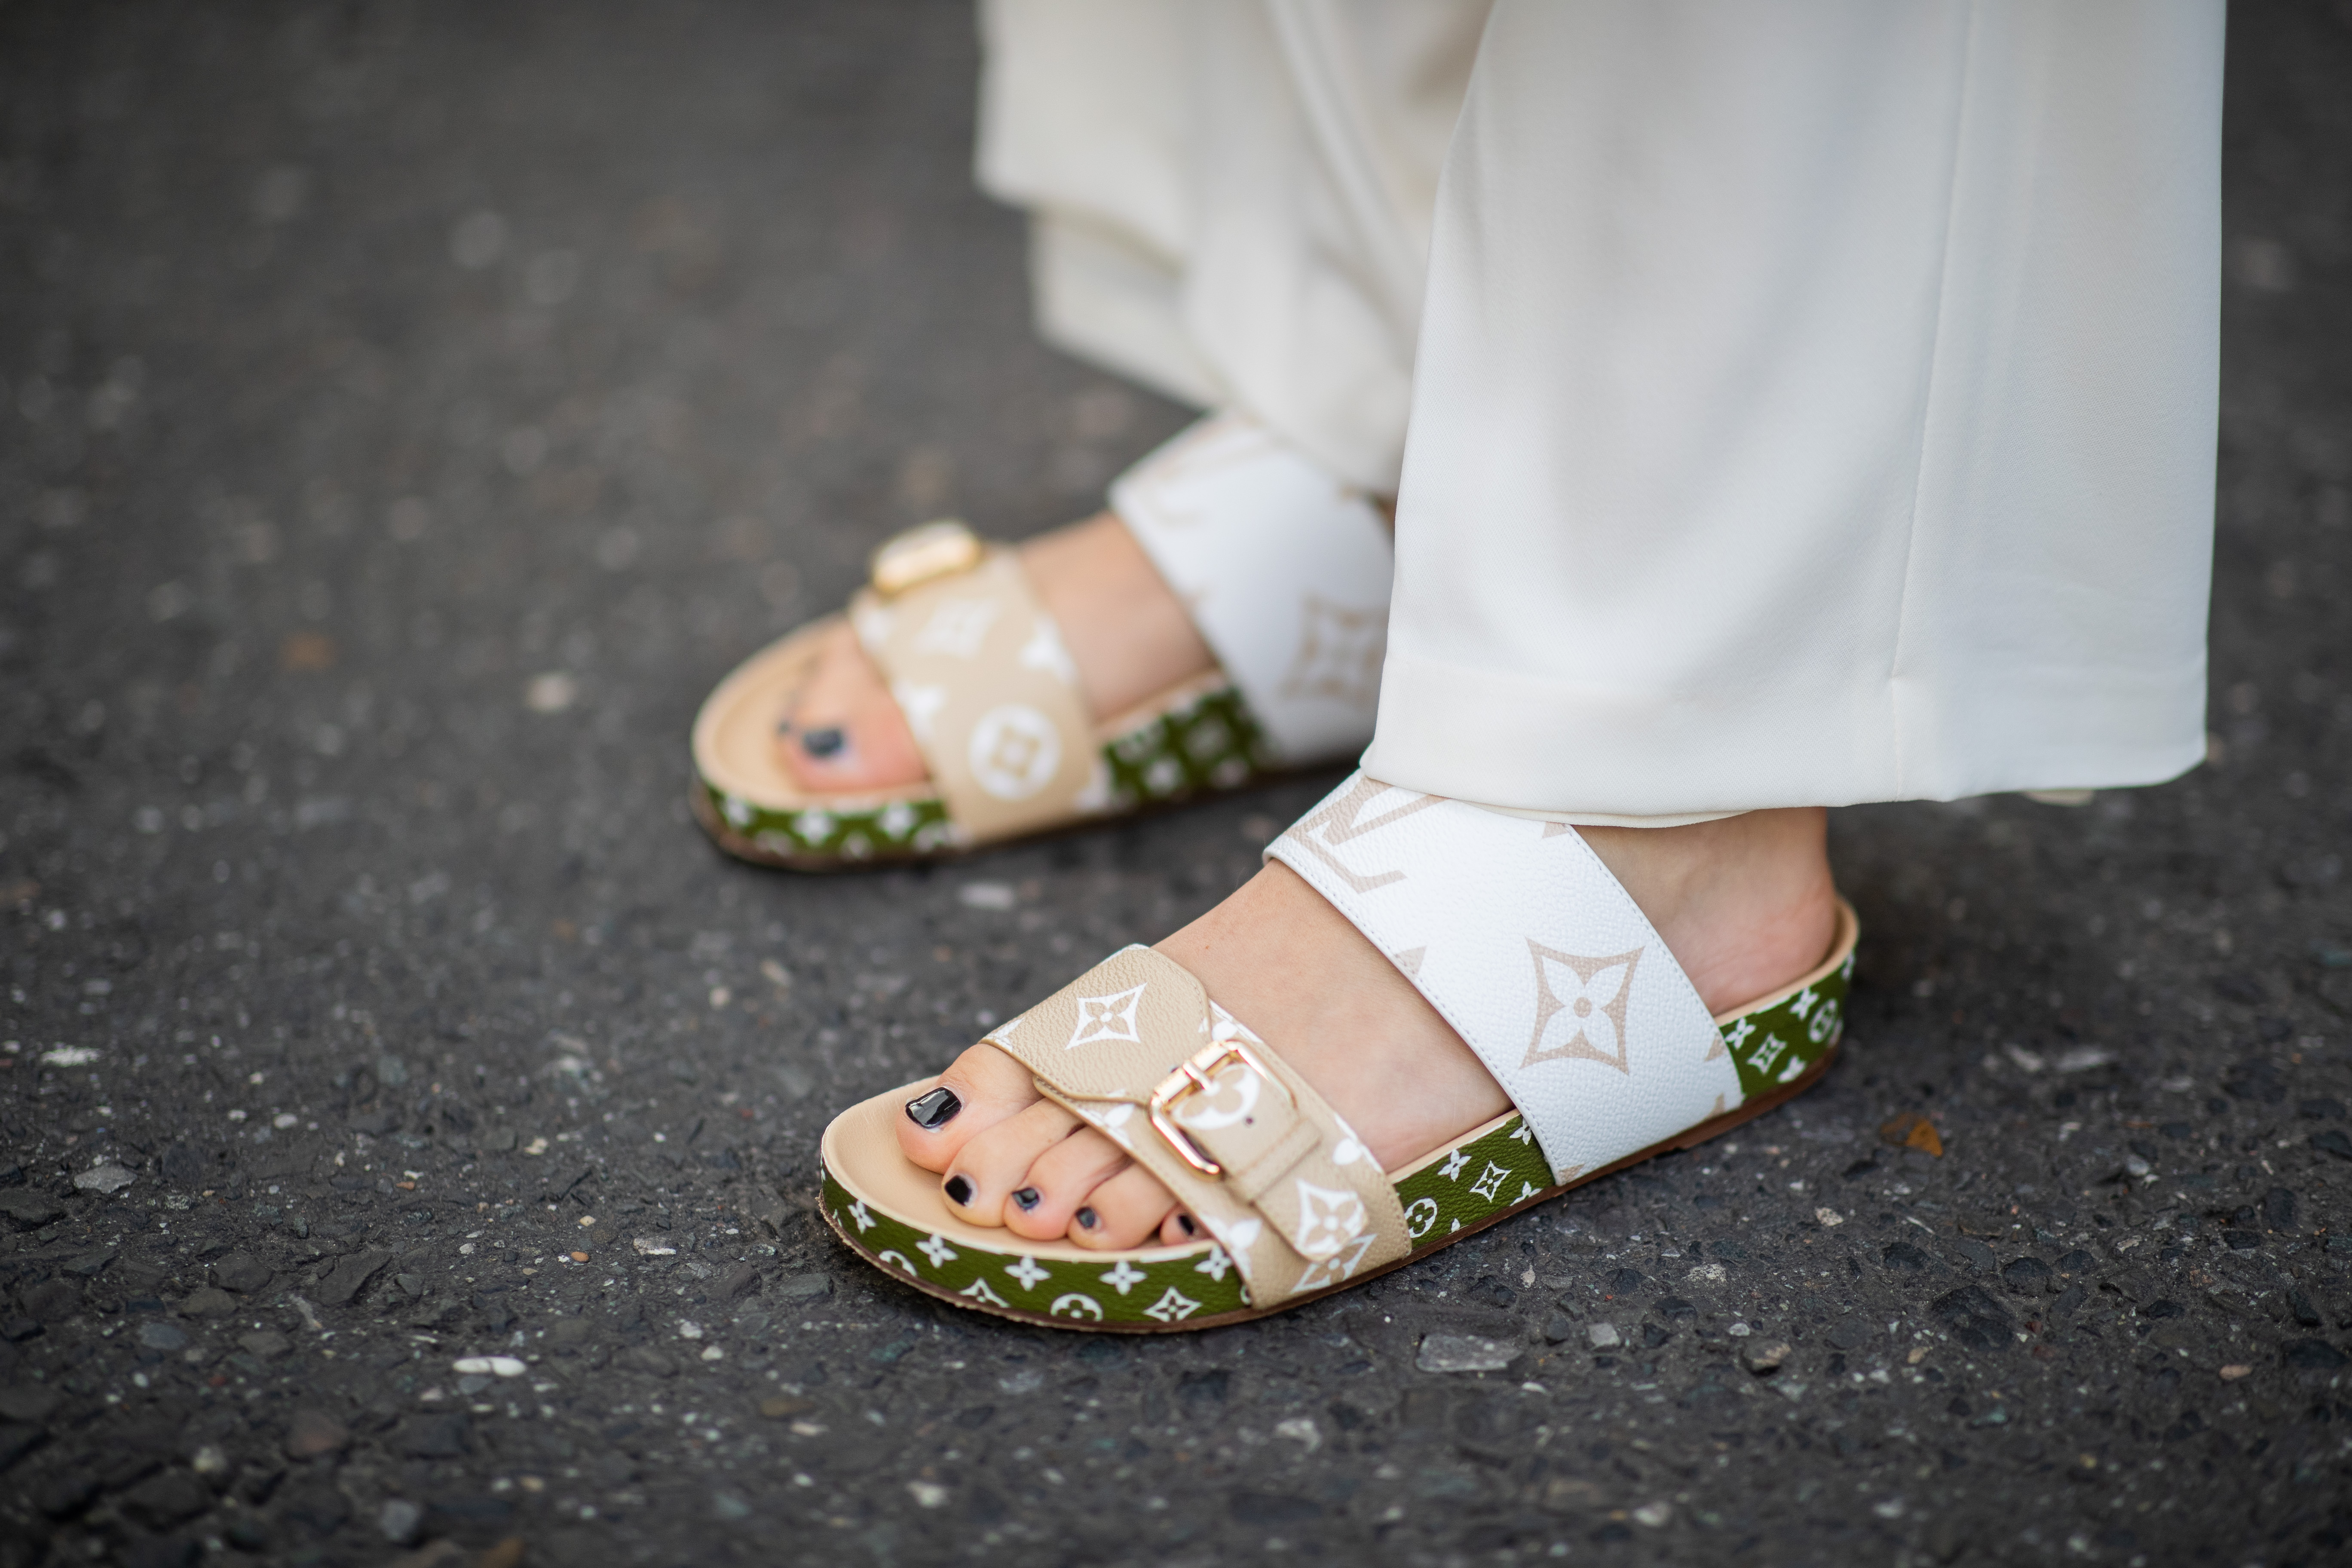 751b58294ce35 4 Comfy Flat Sandals for Summer Our Editors Love Right Now